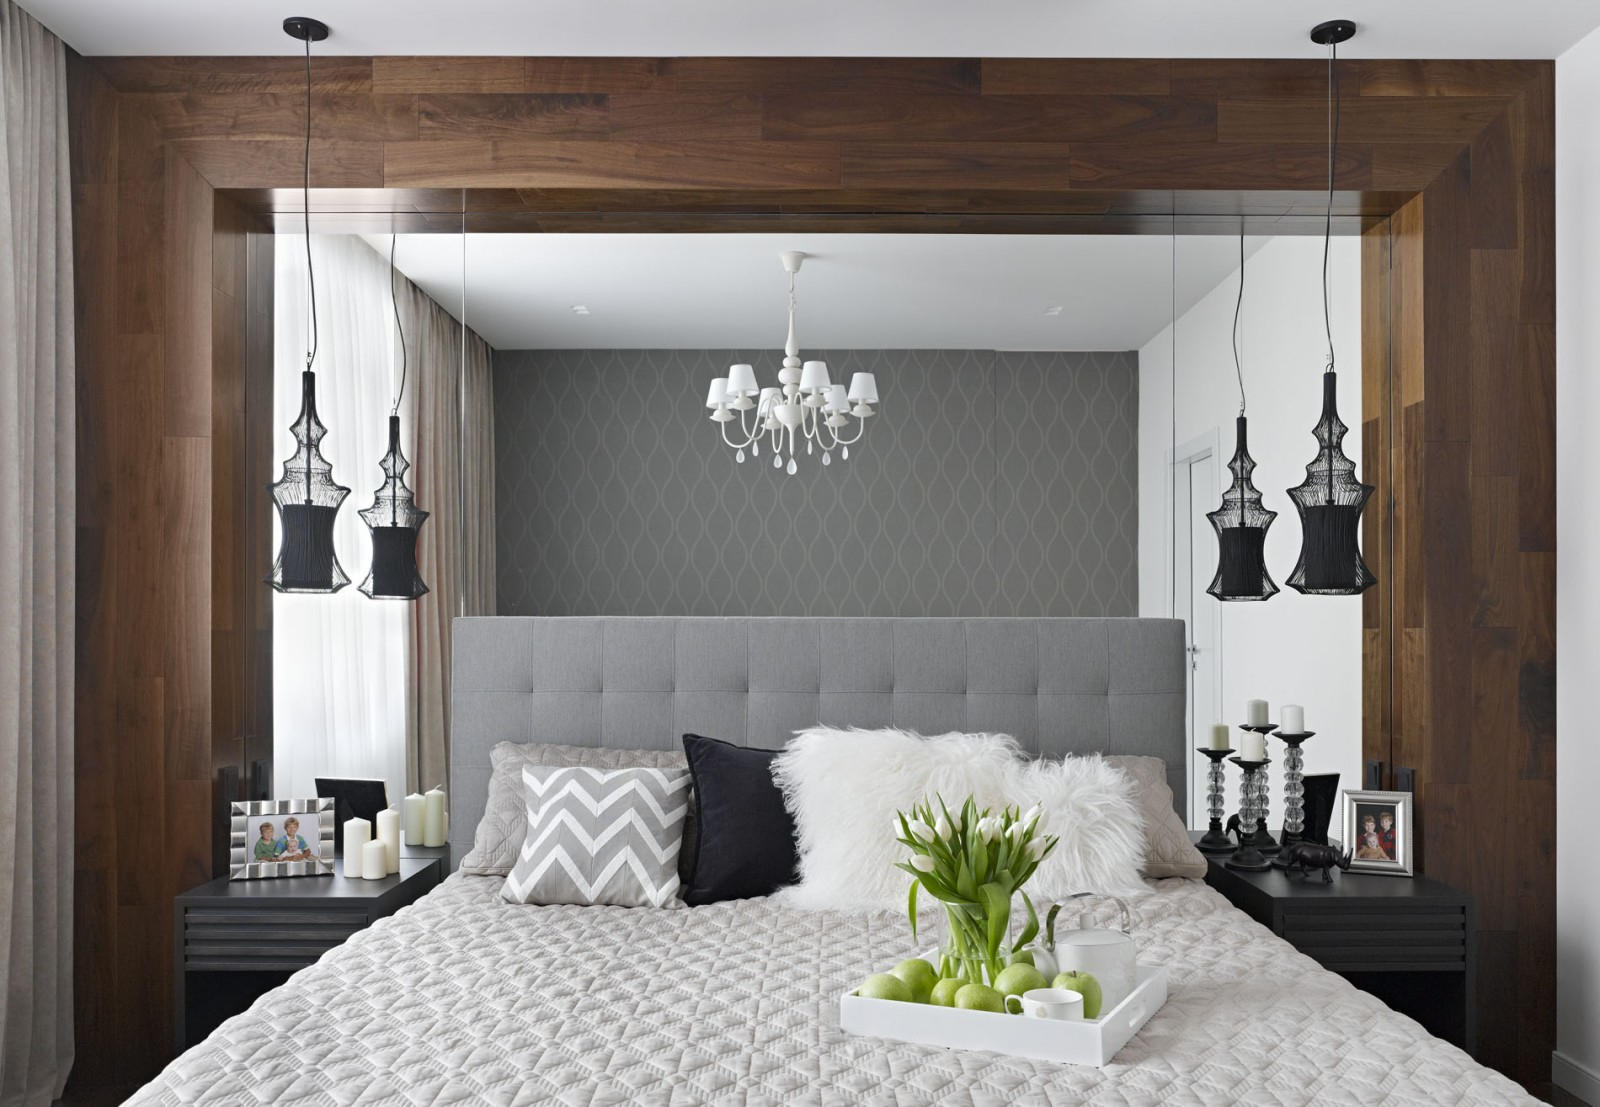 20 Best Small Modern Bedroom Ideas Architecture Beast for 14 Clever Concepts of How to Improve Modern Elegant Bedrooms